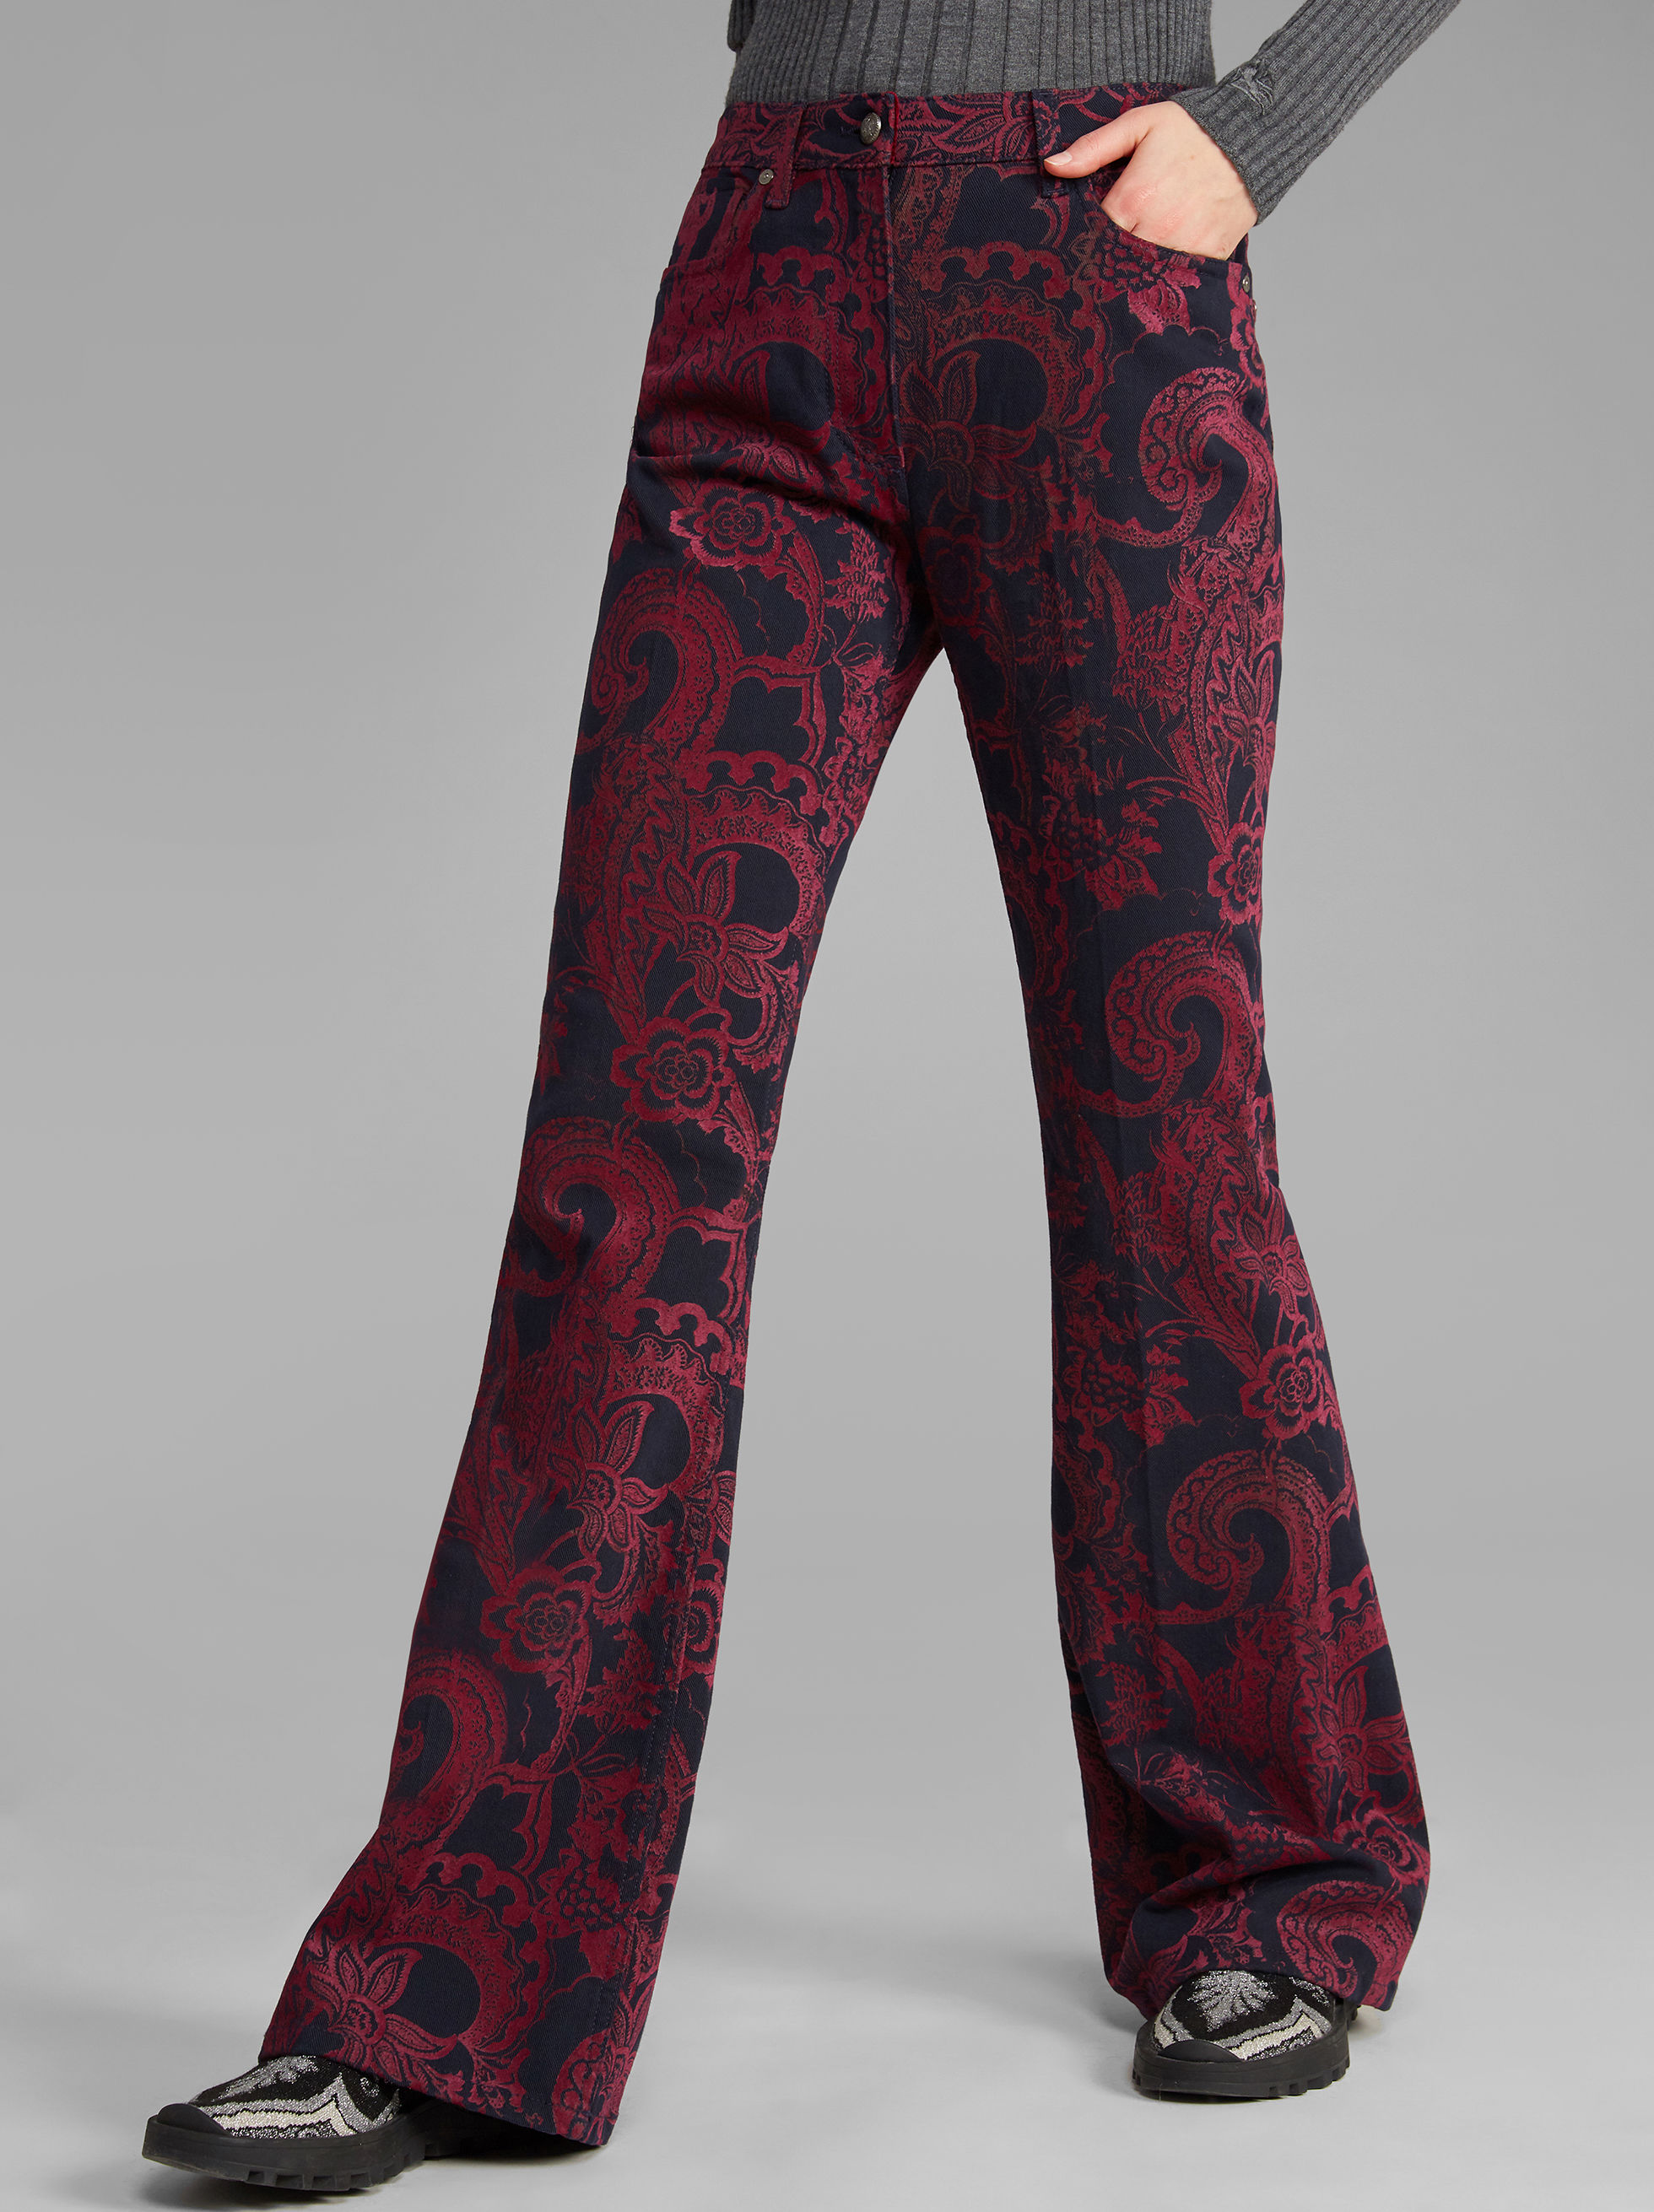 JEANS STAMPA PAISLEY FLOREALE